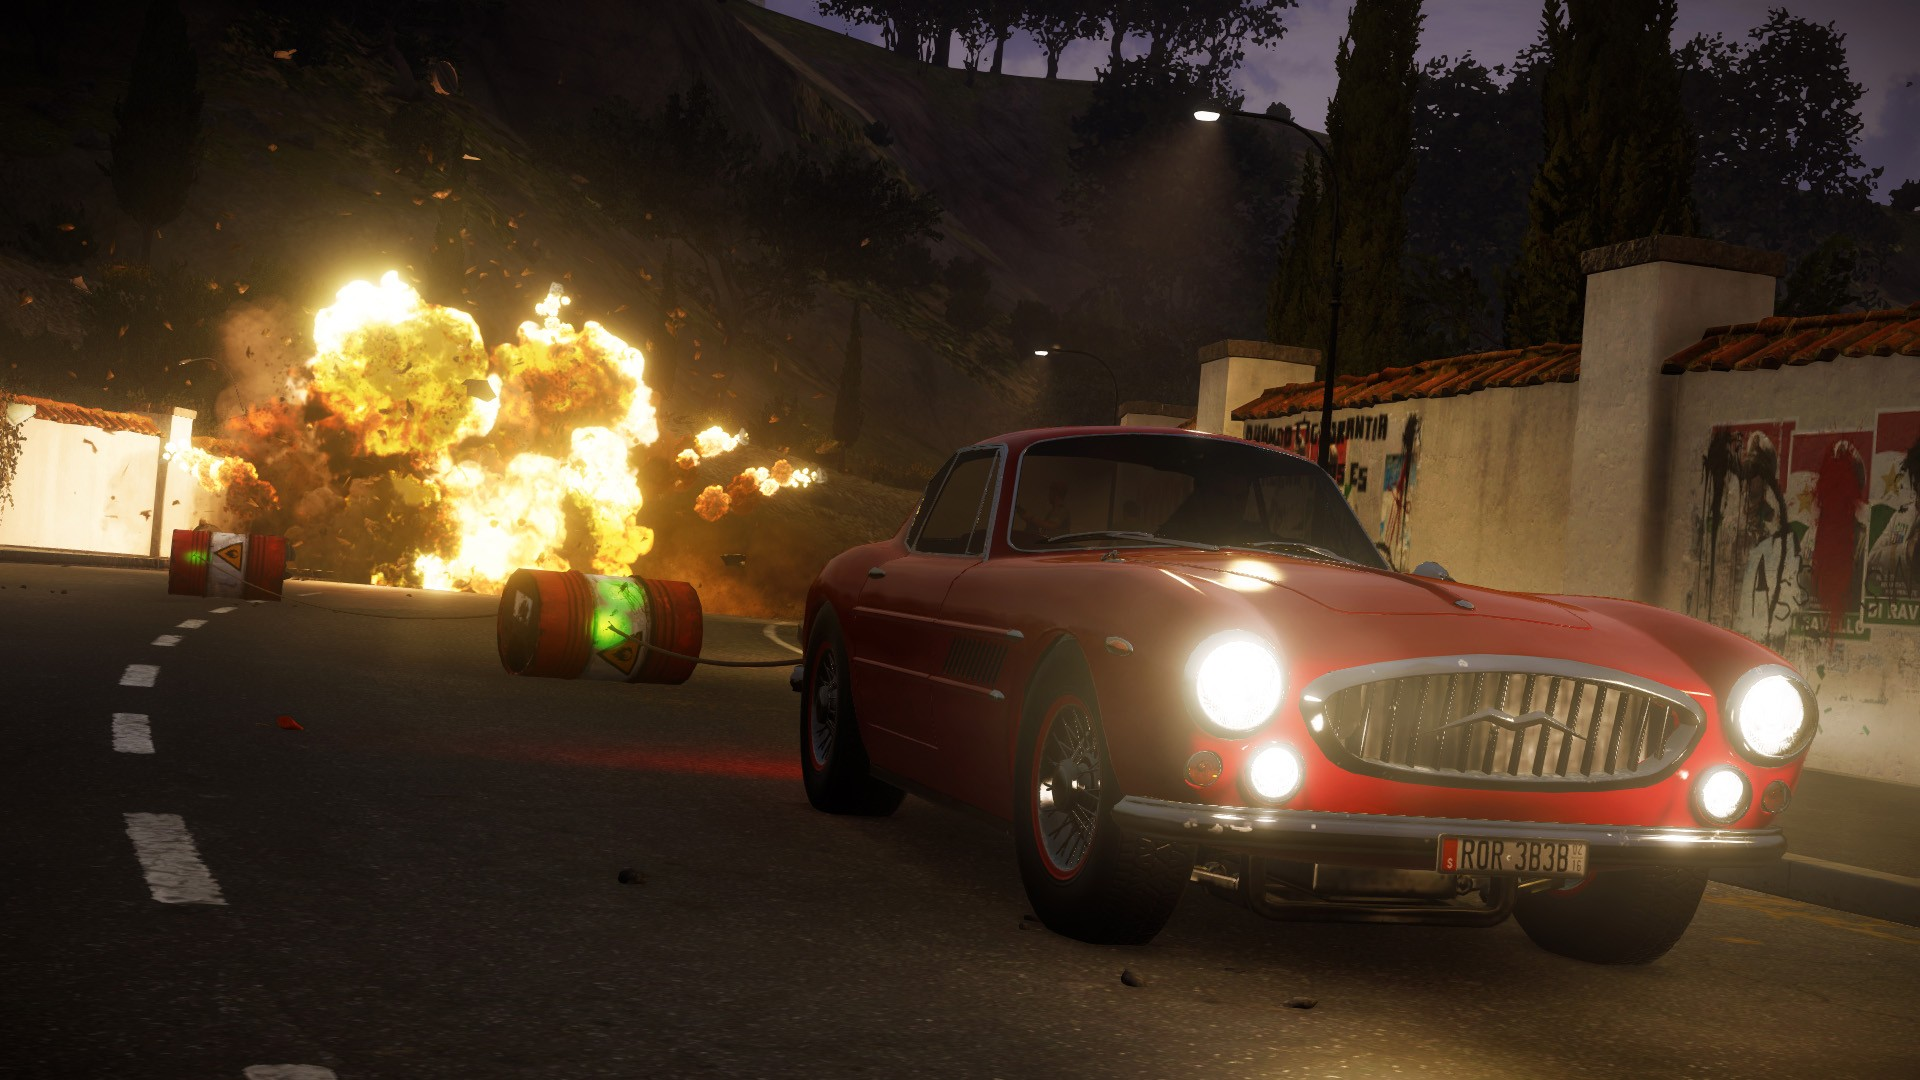 Just Cause 3 Has Racing Game Handling for Cars to Make Them Bullets